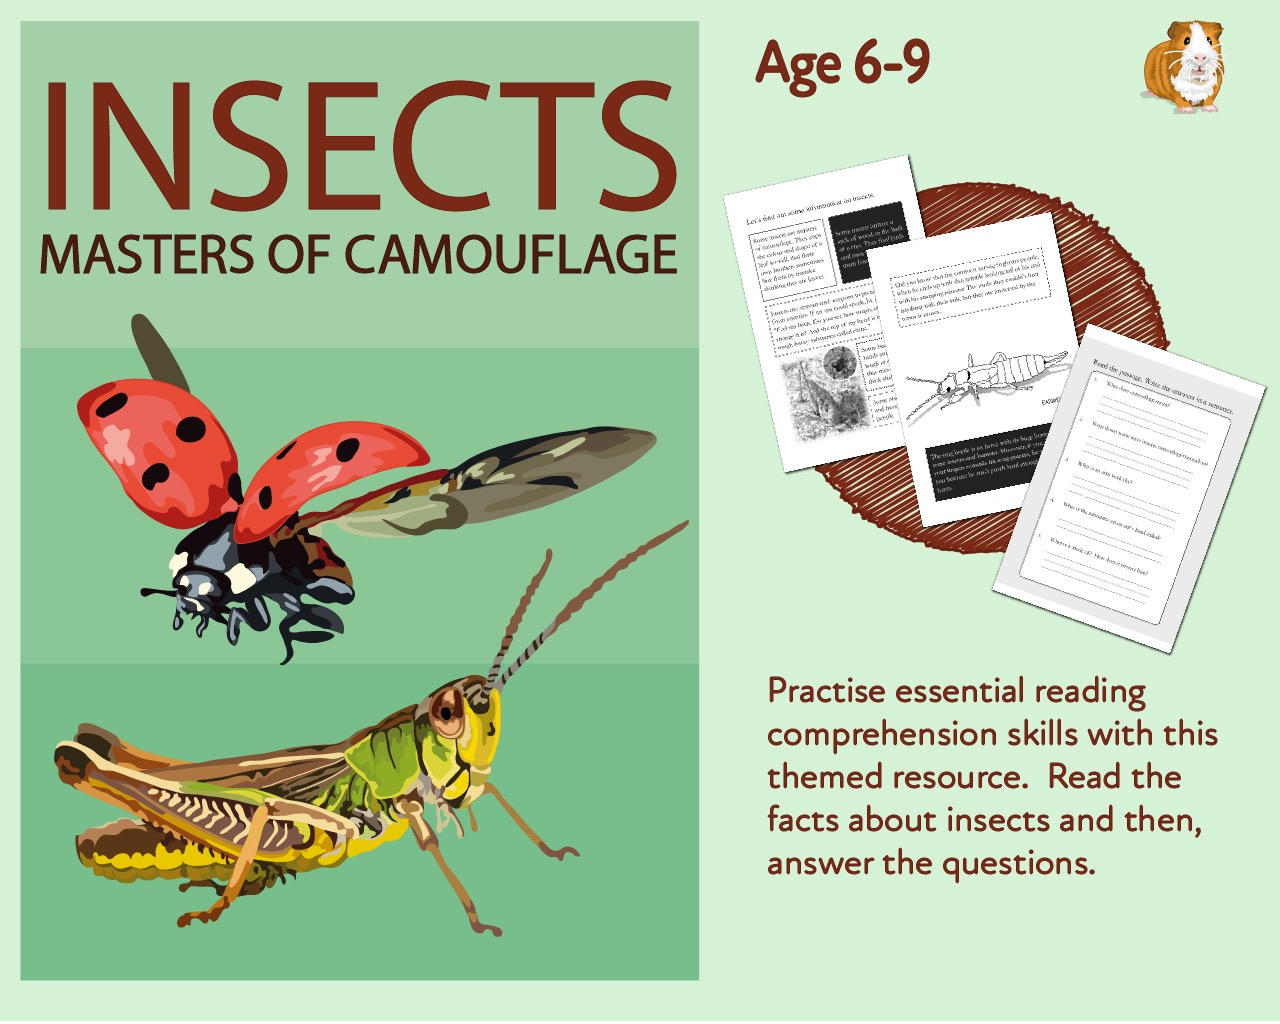 Let's Practise Our Reading Comprehension: Insects Are a Masters Of Camouflage (6-9 years)